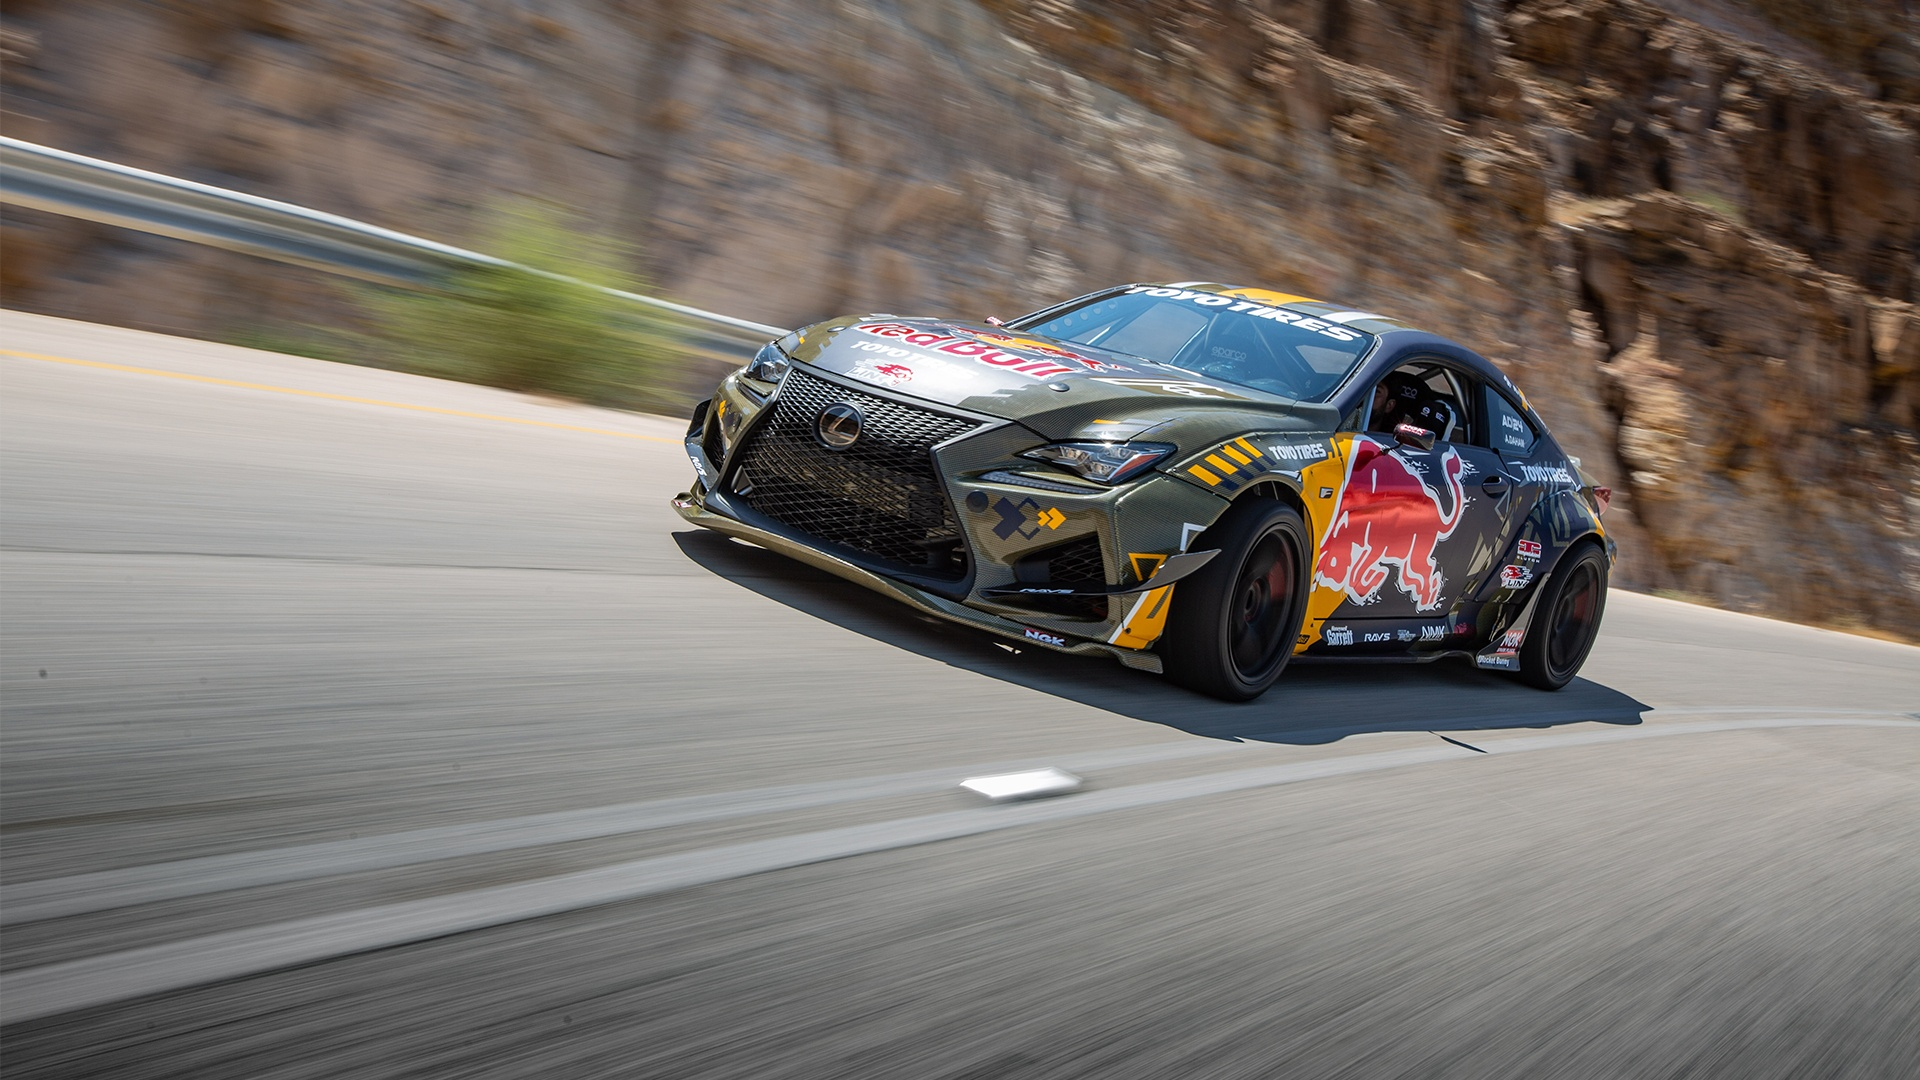 The Most Advanced Lexus Drift Machine On The Planet Hails from the UAE